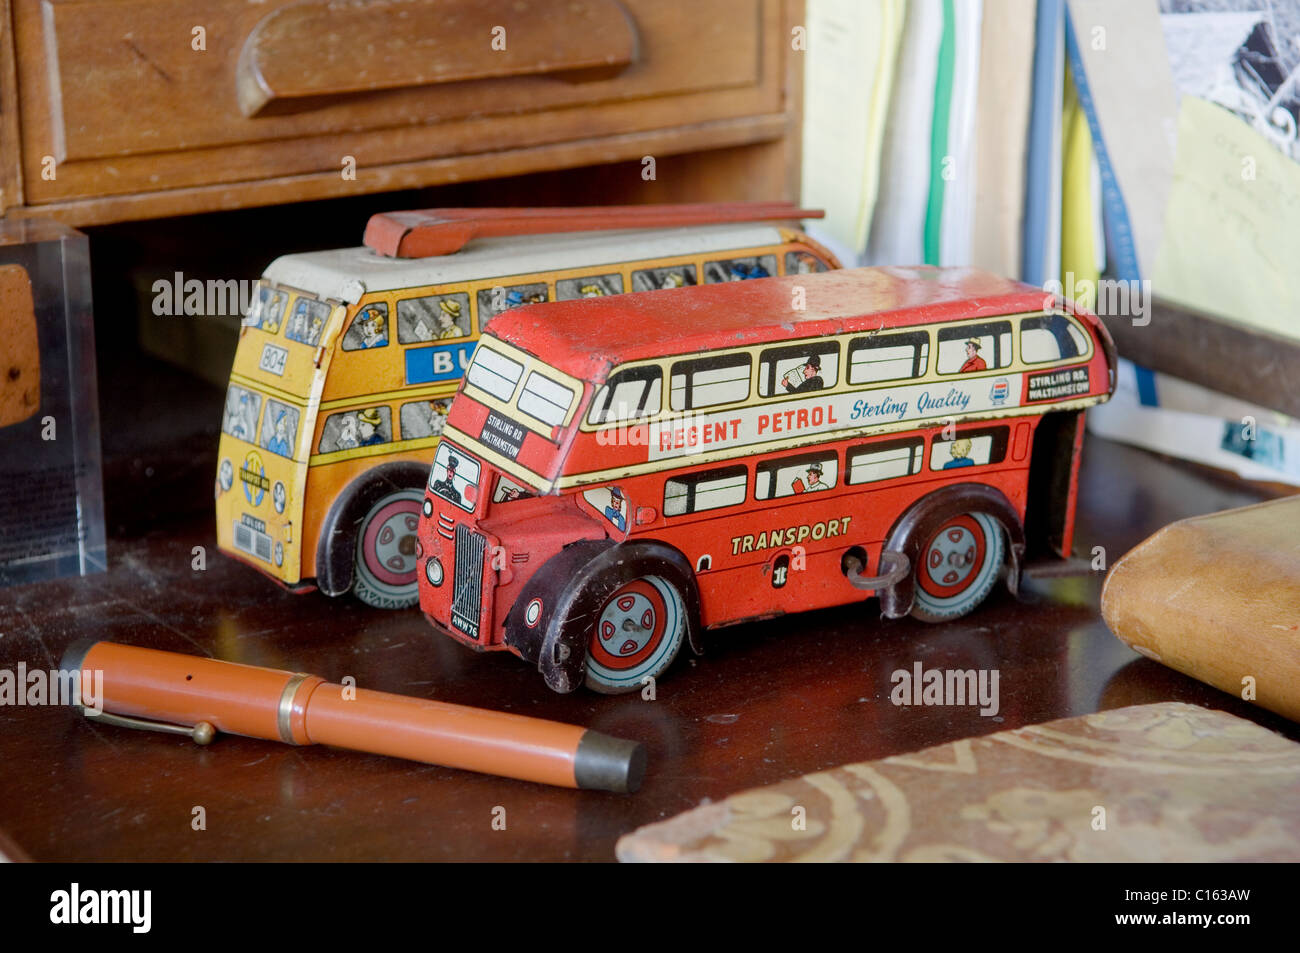 Pair of vintage London bus toys on desk top with pen. - Stock Image